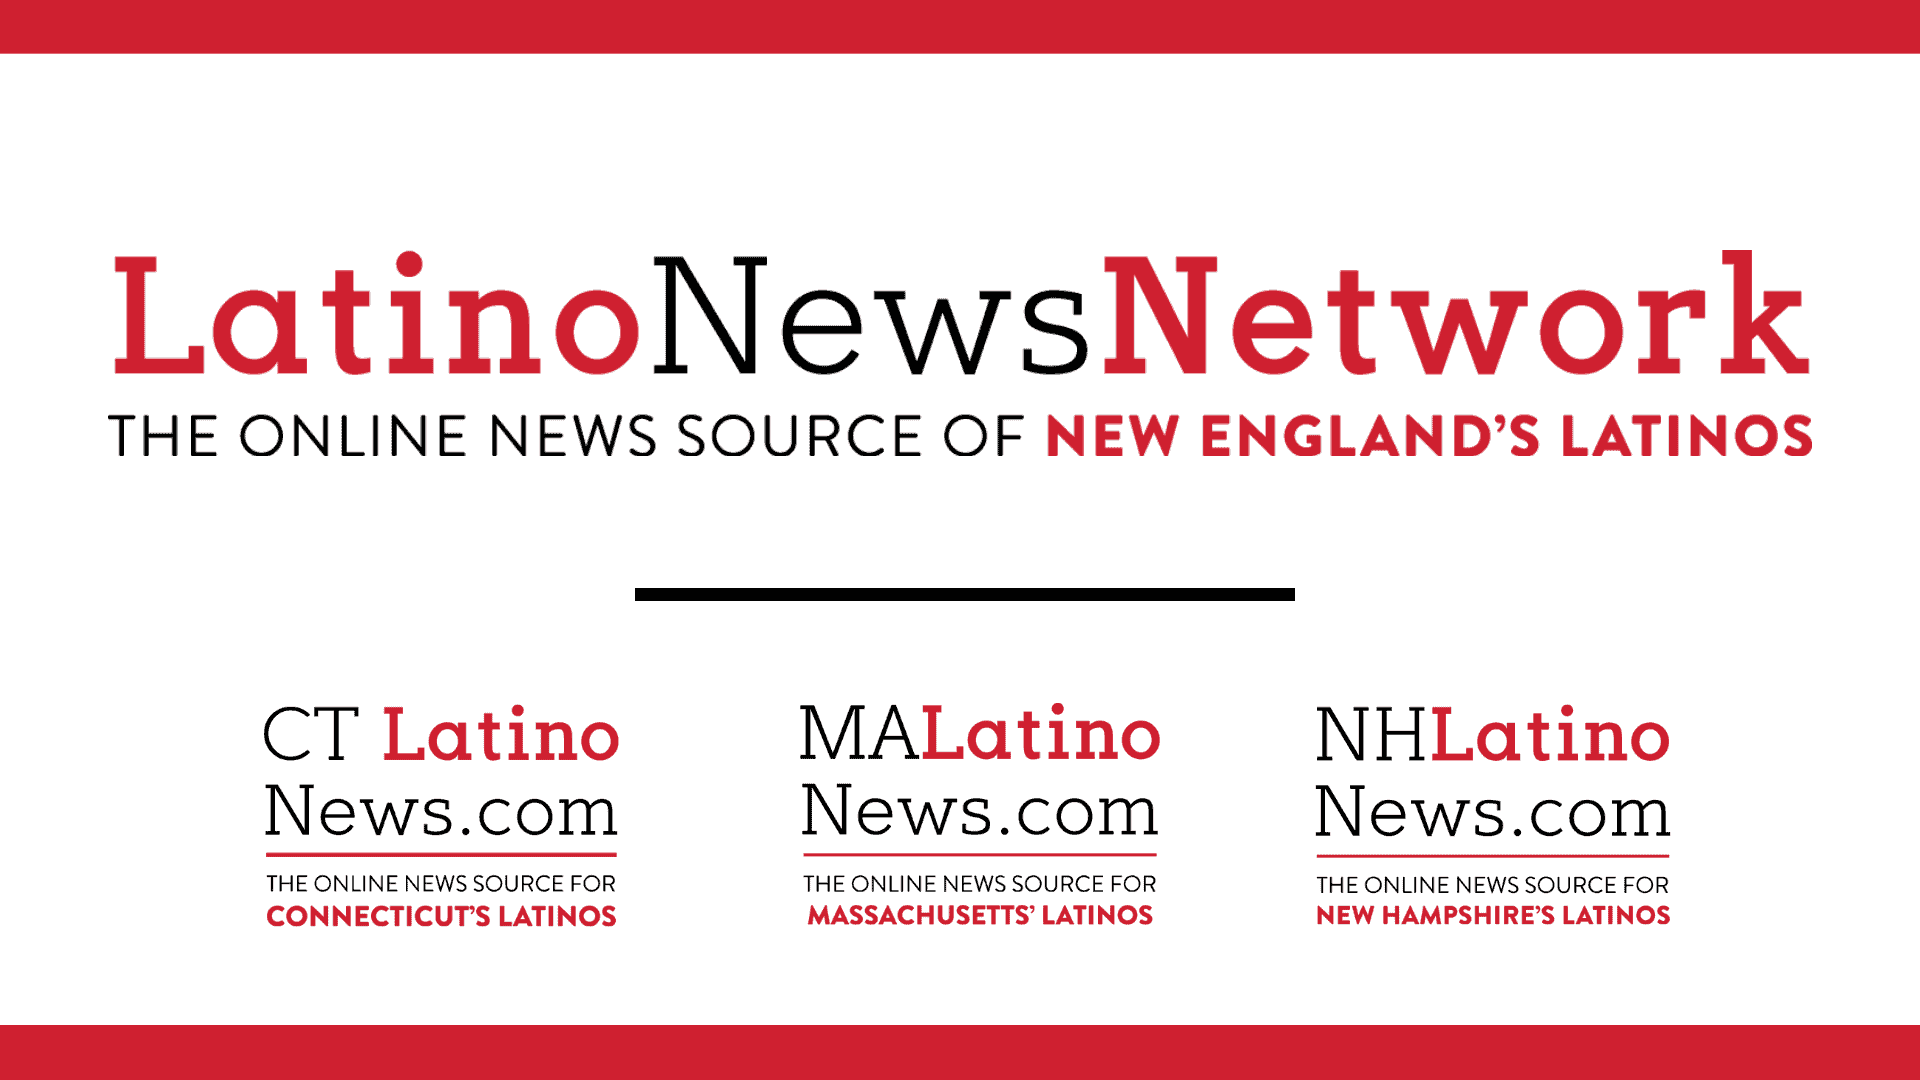 Latino News Network Expands Digital News Outlet with Focus on Serving Massachusetts Underserved Communities